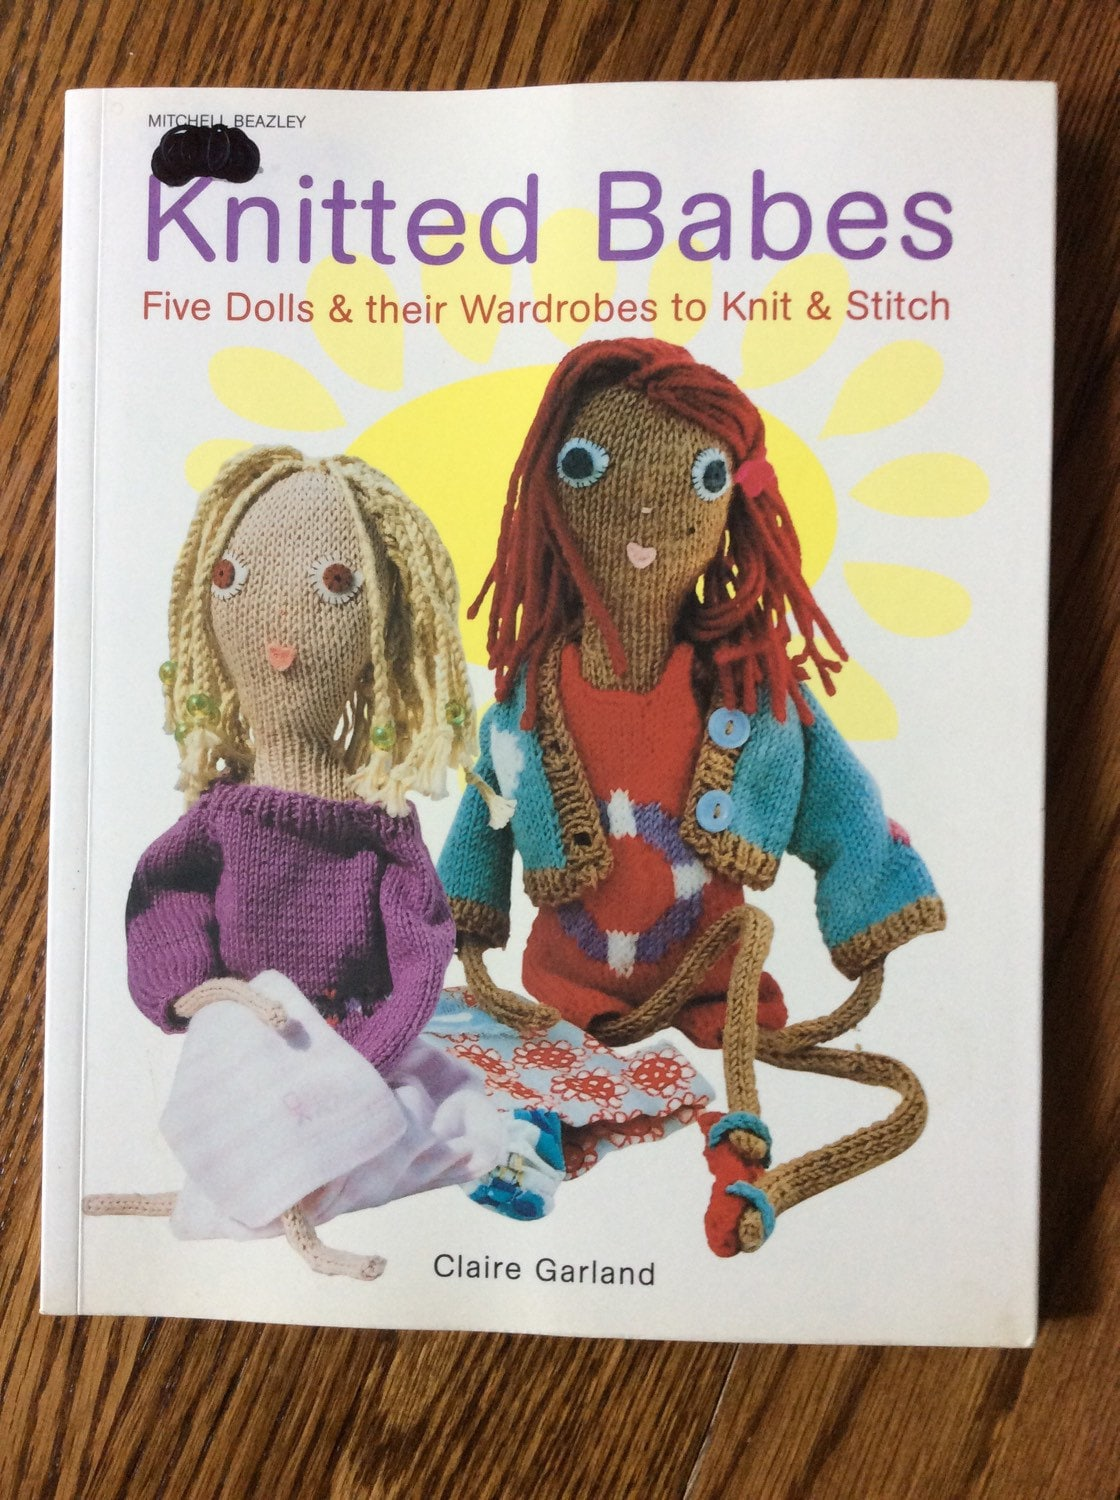 How To Make A Knitted Book Cover ~ Knitting pattern book knitted babes five dolls and etsy